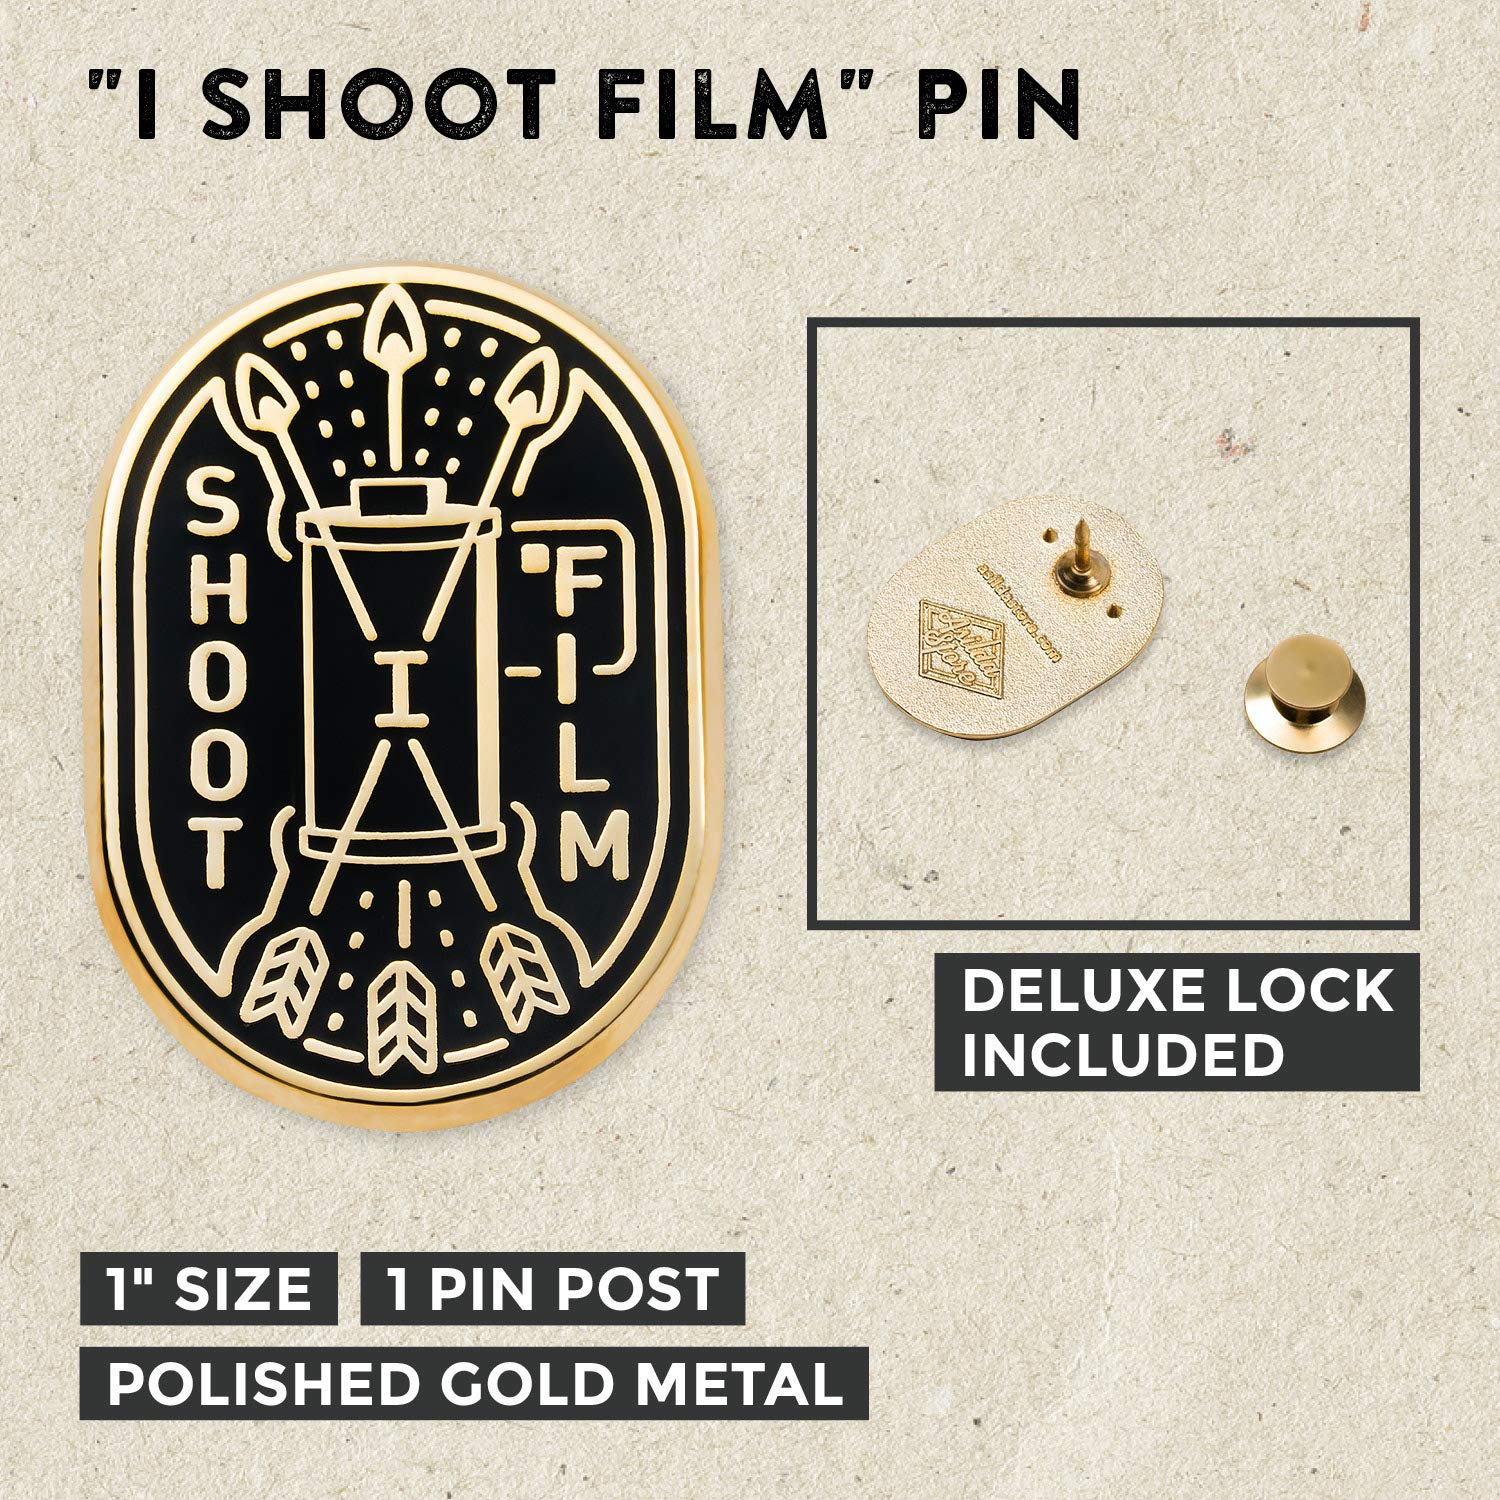 Asilda Store Lapel Enamel Pin with Deluxe Pin Lock Shoot with Purpose